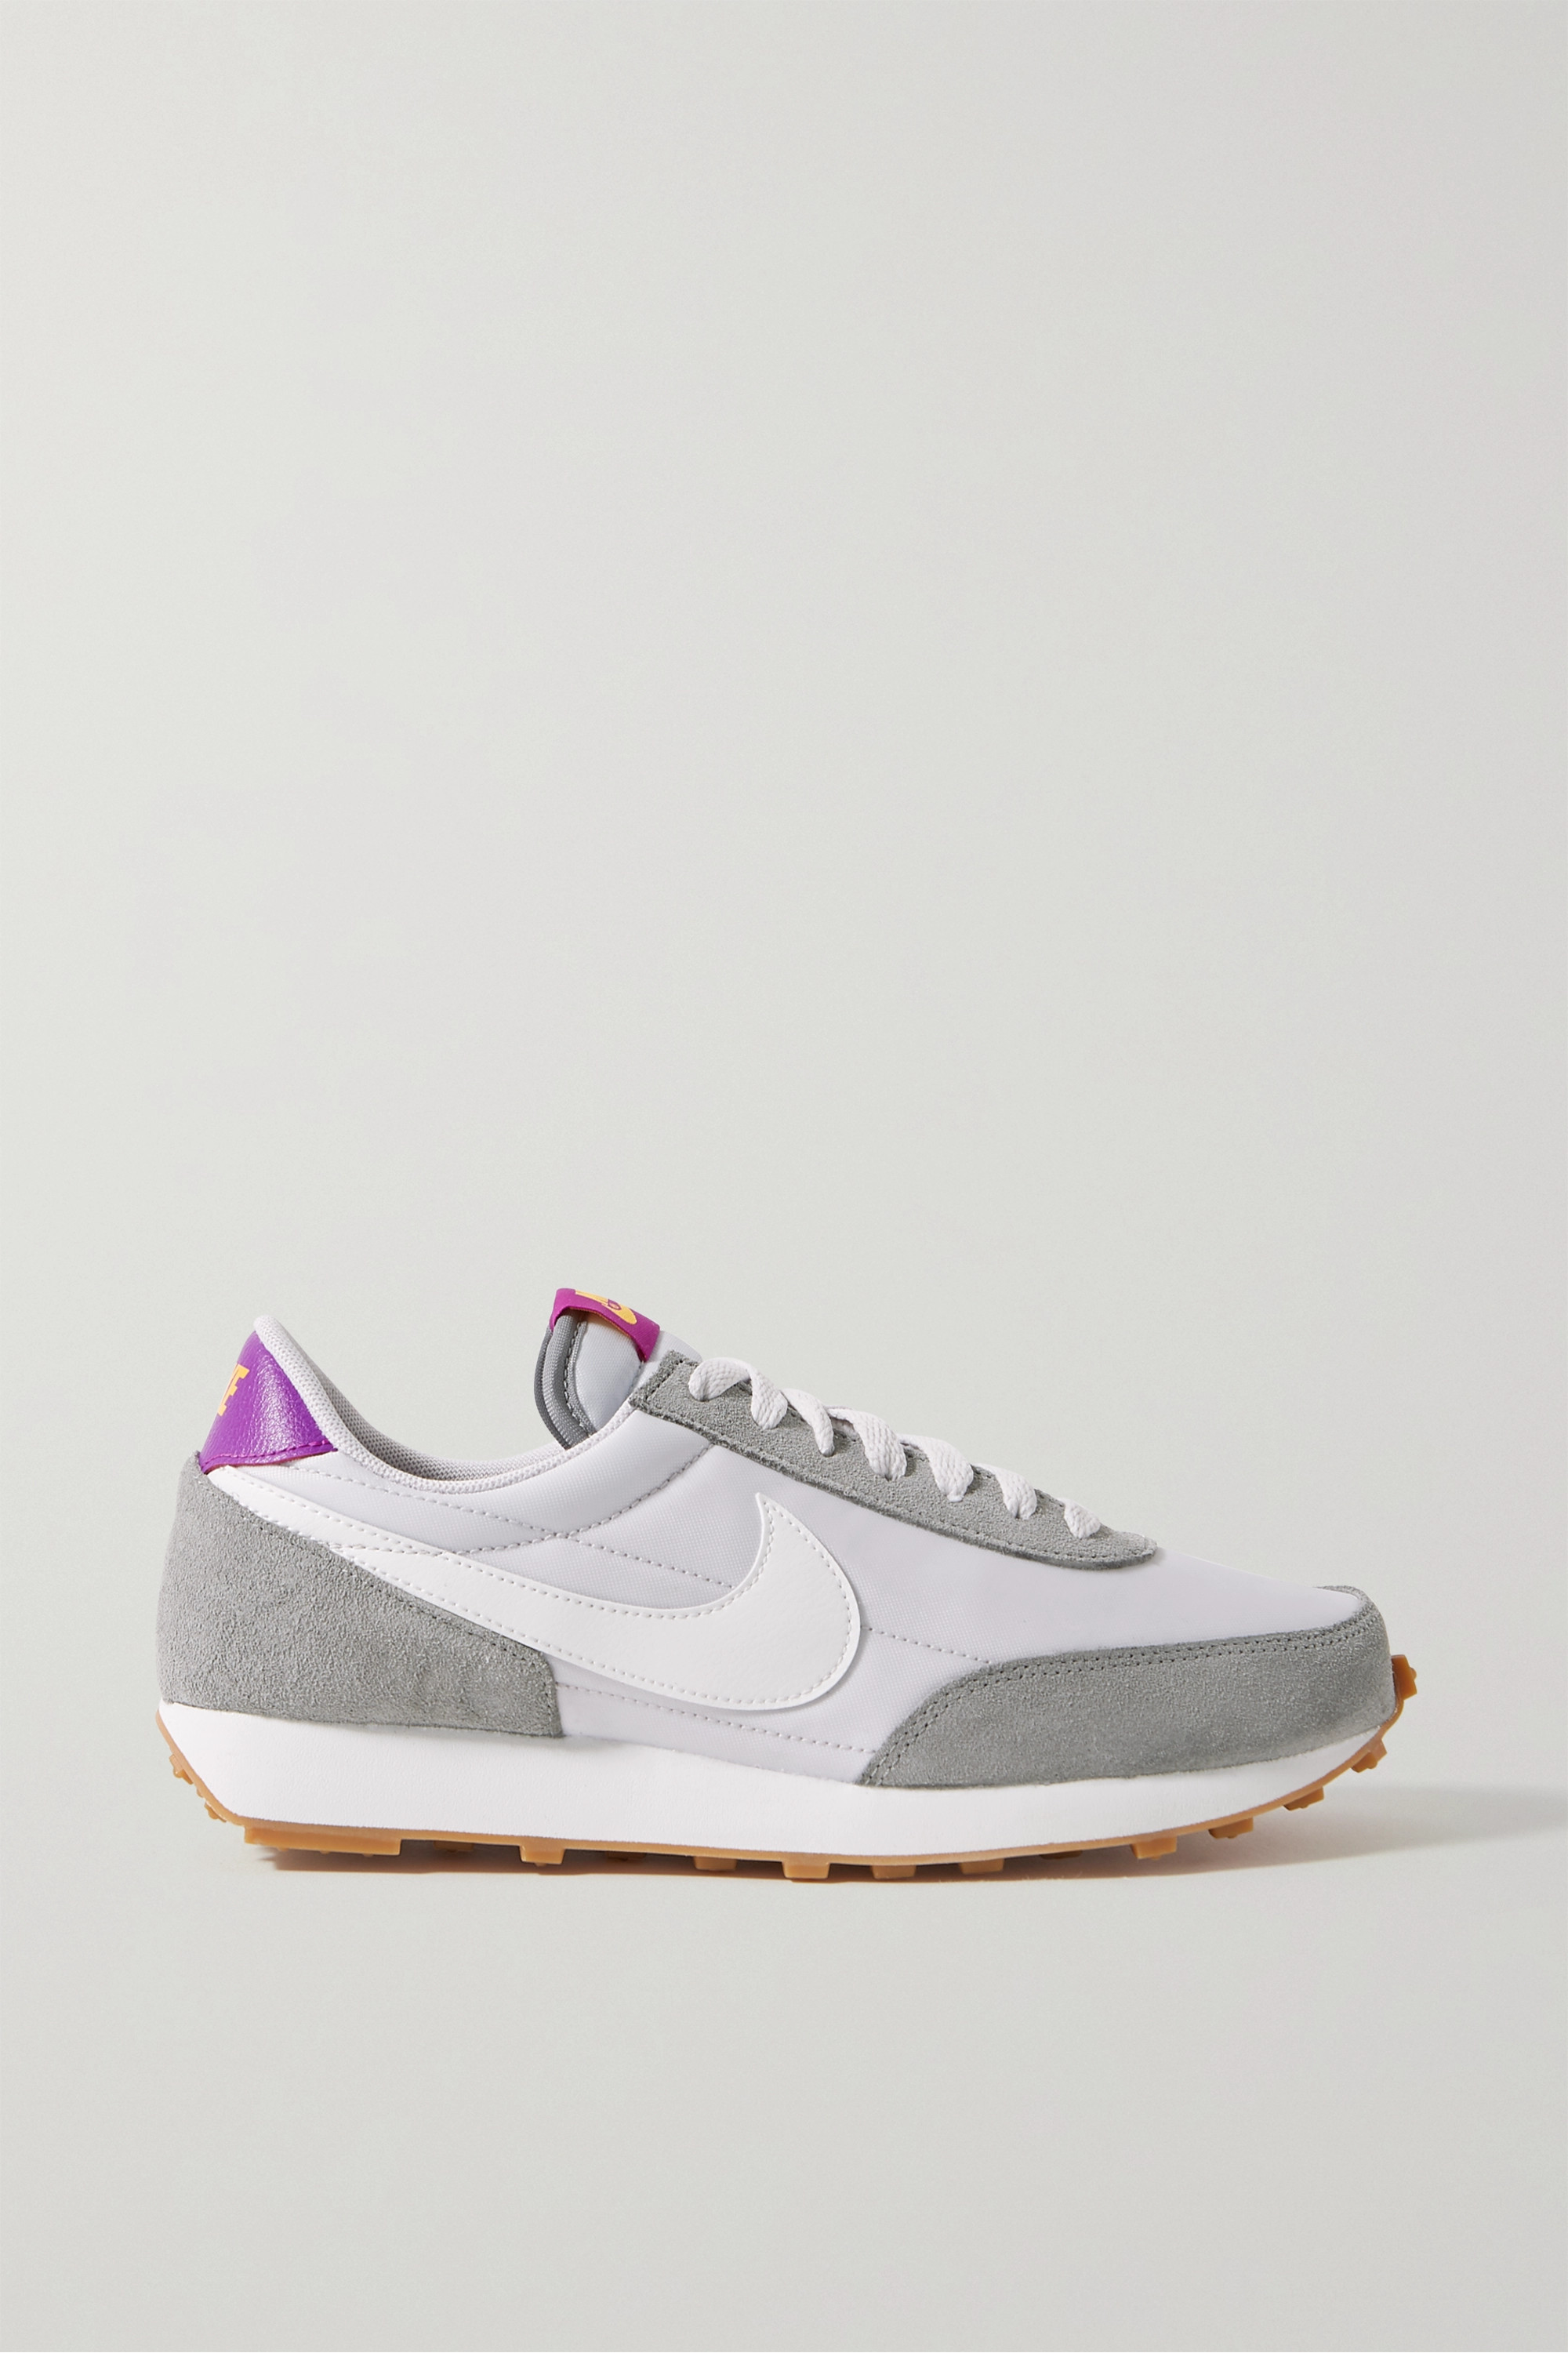 Light gray Daybreak shell, suede and